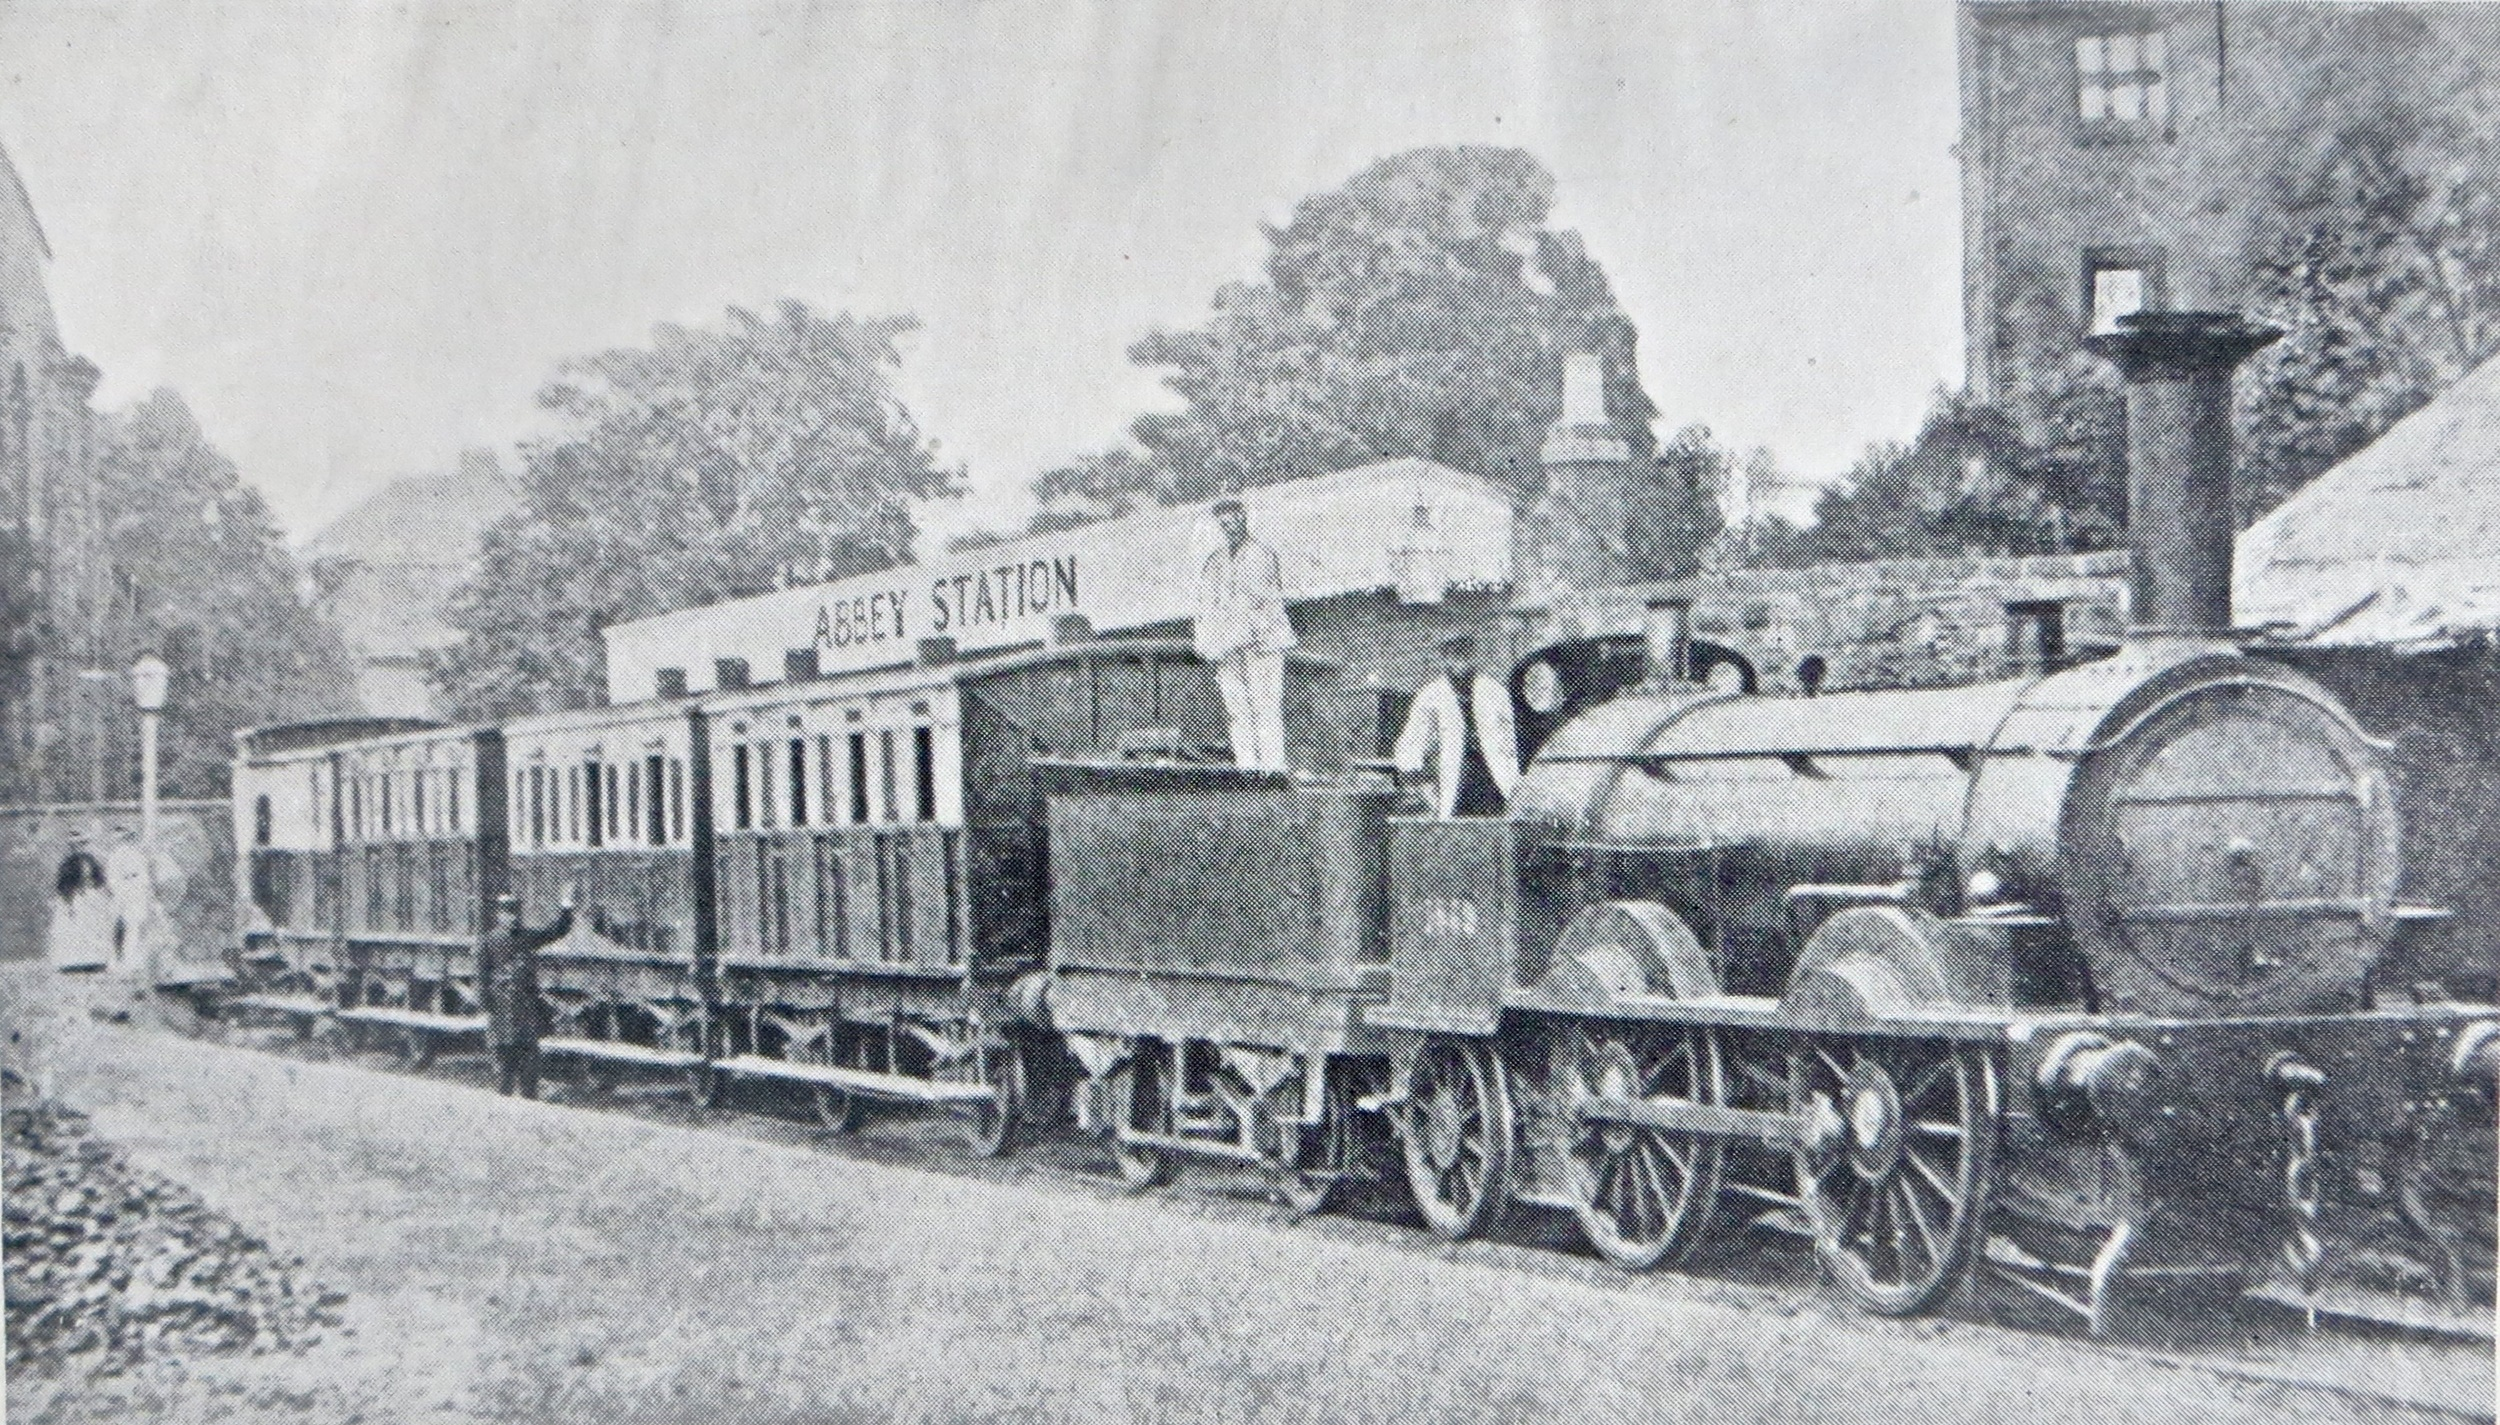 Shrewsbury Abbey Railway station circa 1872